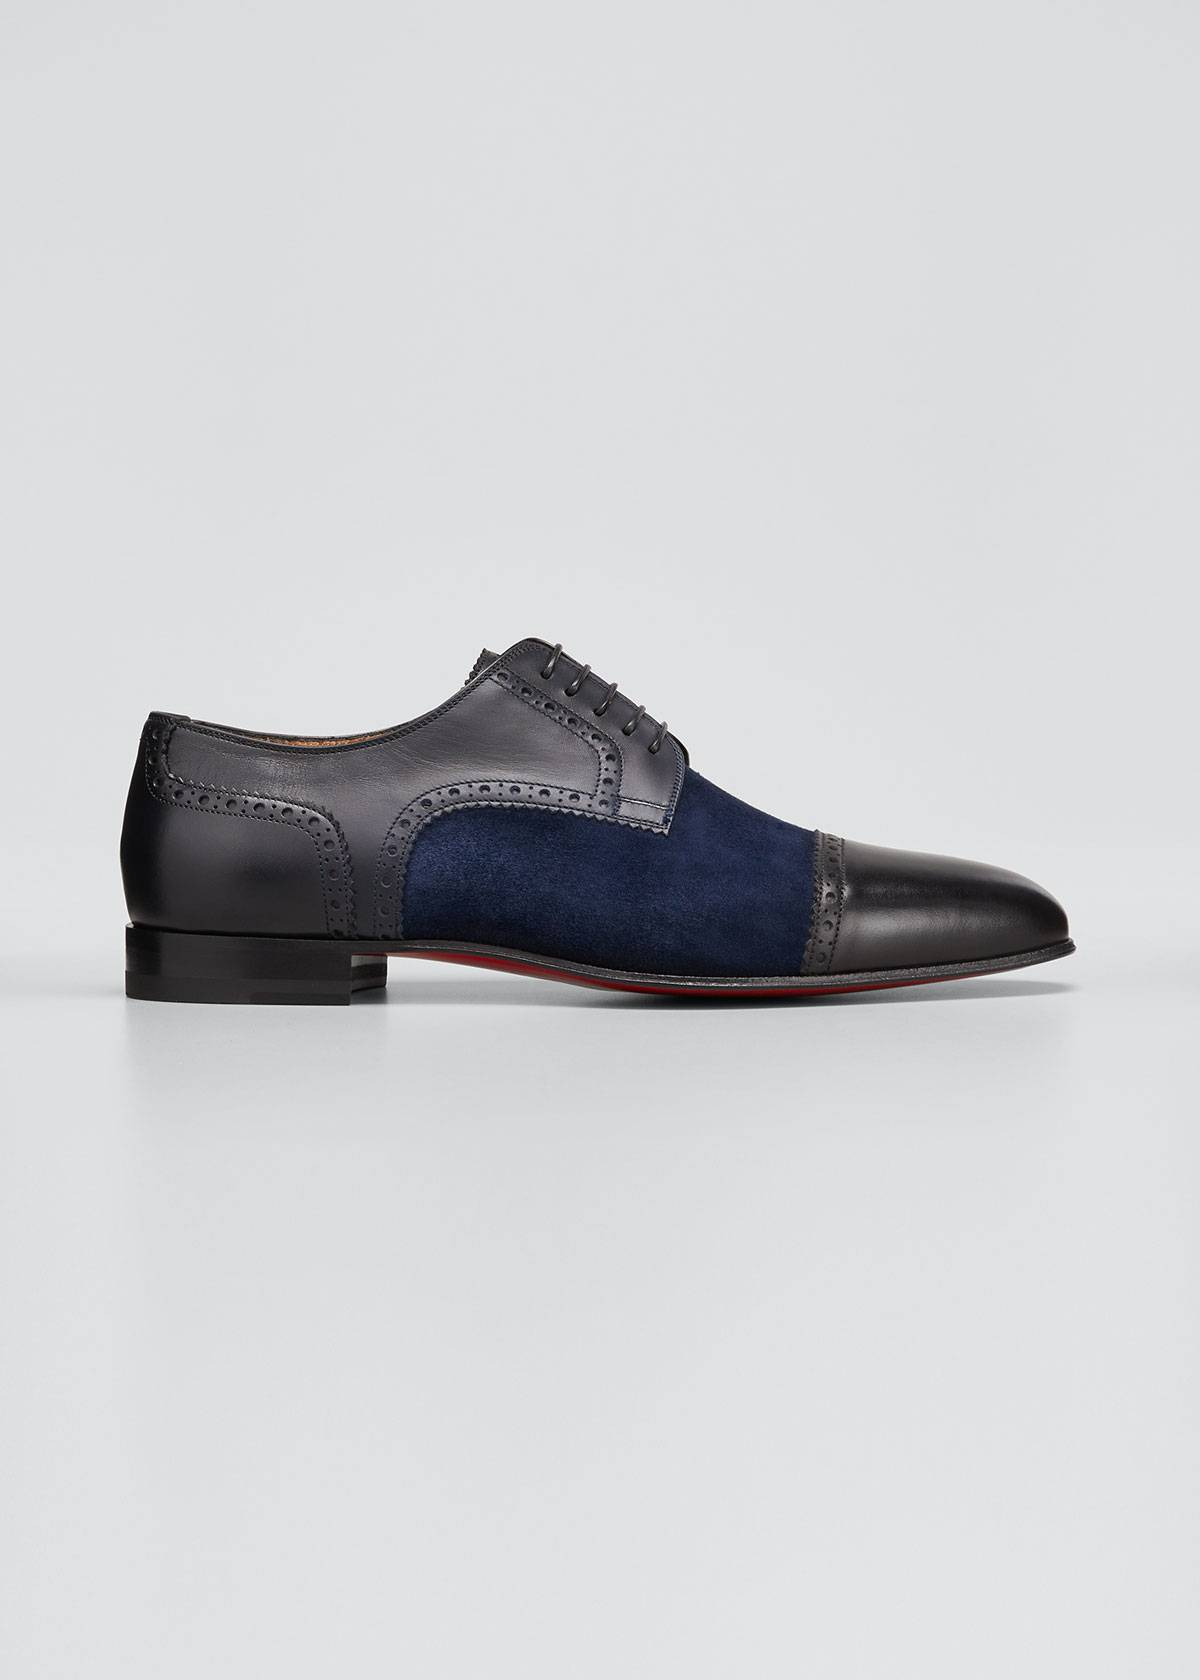 Christian Louboutin Men's Eygeny Brogue Leather/Suede Derby Shoes  - male - MULTI - Size: 43.5 EU(10.5D US)